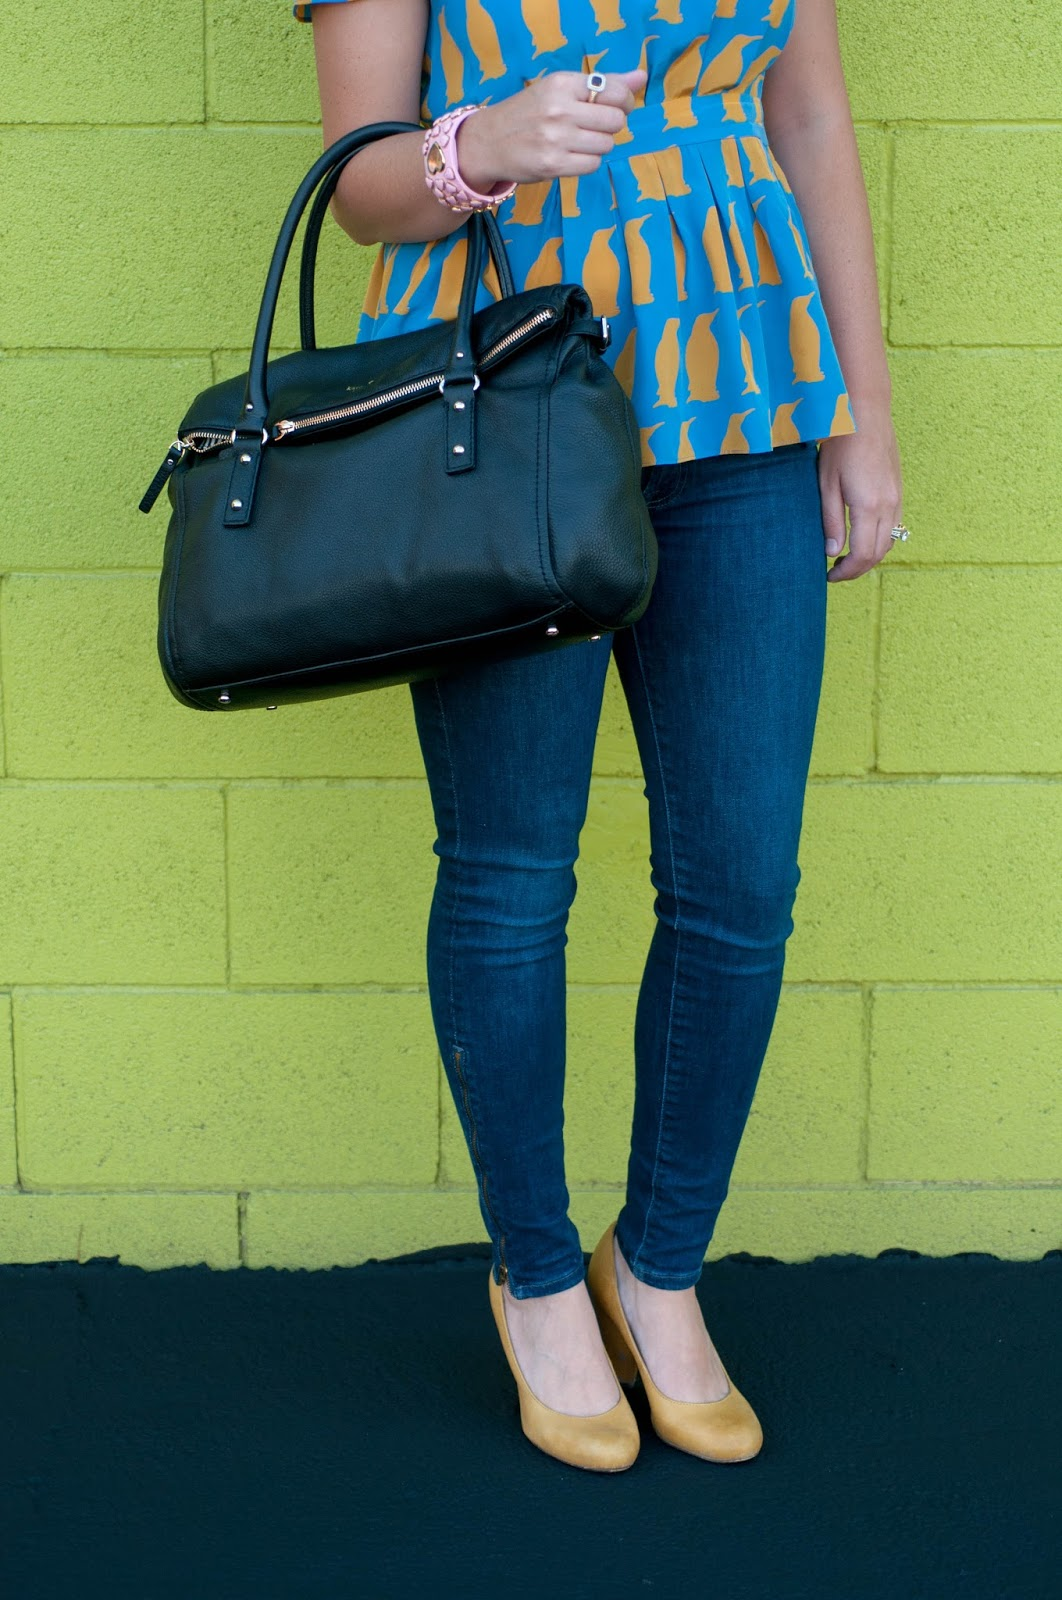 7 for all mankind, 7 jeans, charlotte taylor penguin chiffon blouse, kate spade cobble hill satchel, seychelles